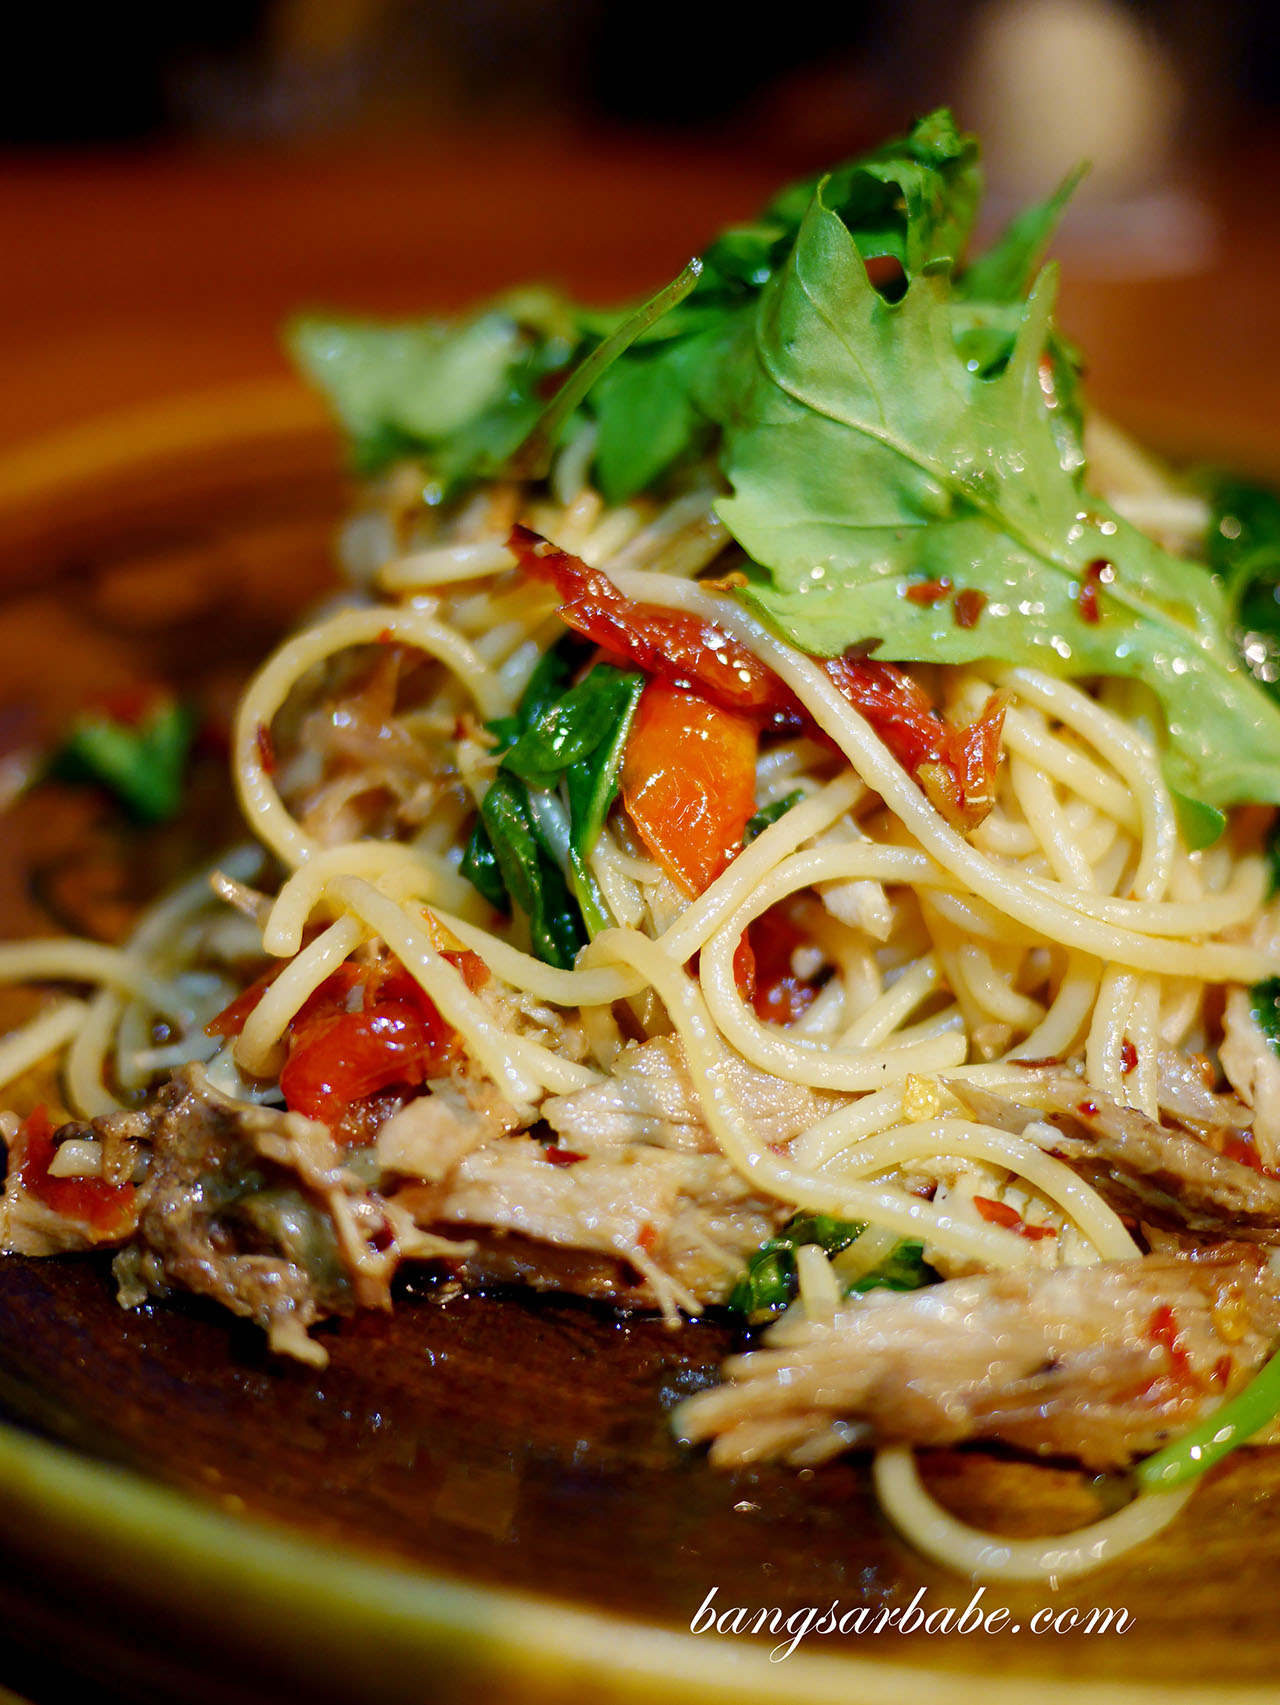 Shredded Duck Confit Pasta